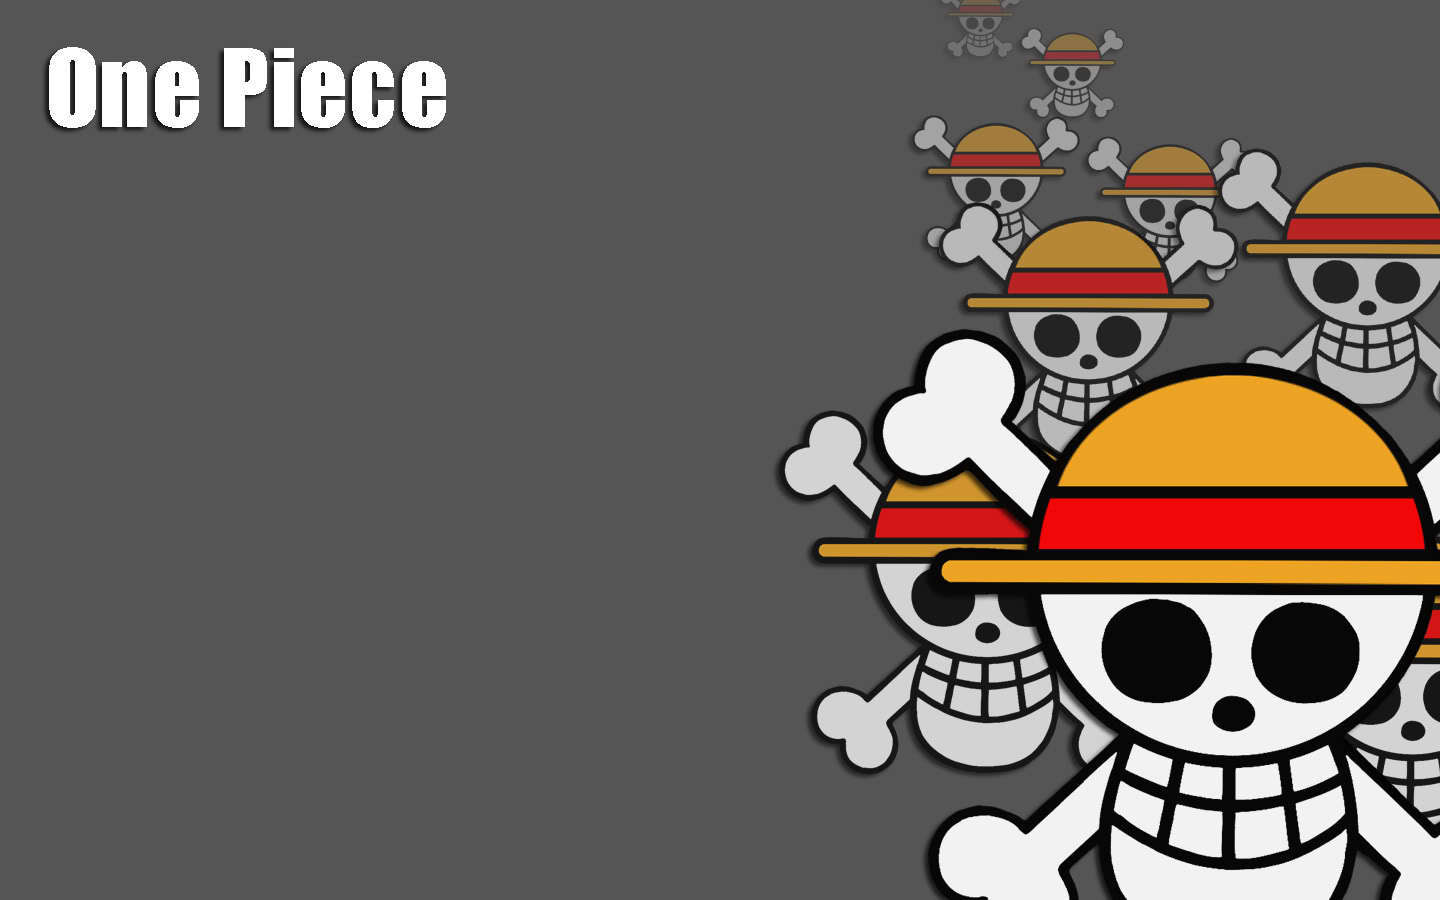 Free Download Jolly Roger One Piece Hd Wallpapers Jolly Roger One